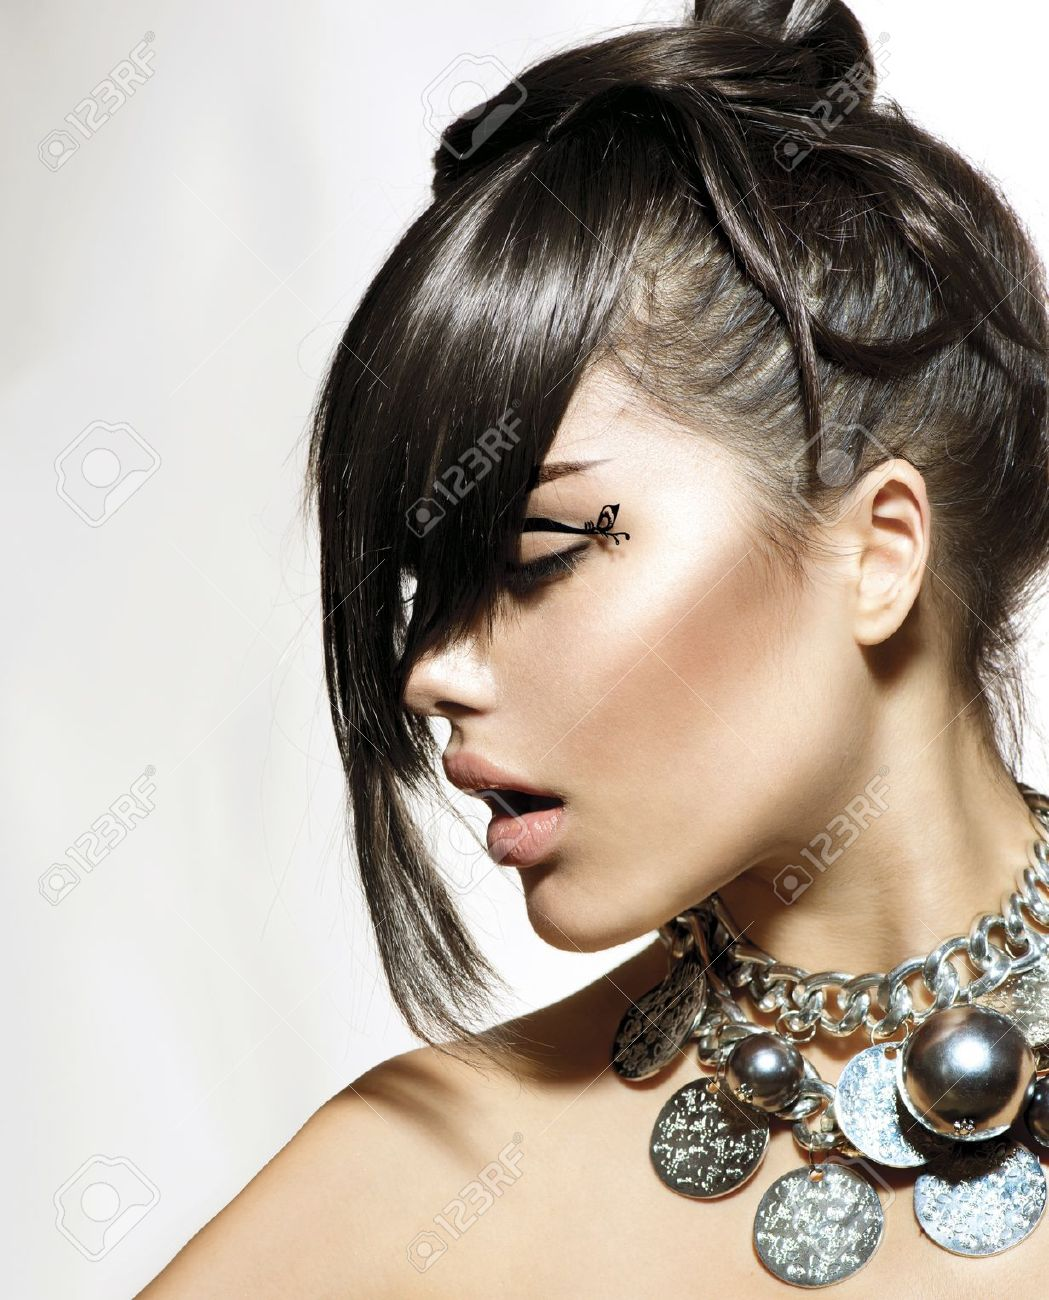 Fashion Glamour Beauty Girl With Stylish Hairstyle and Makeup Stock Photo - 21212794